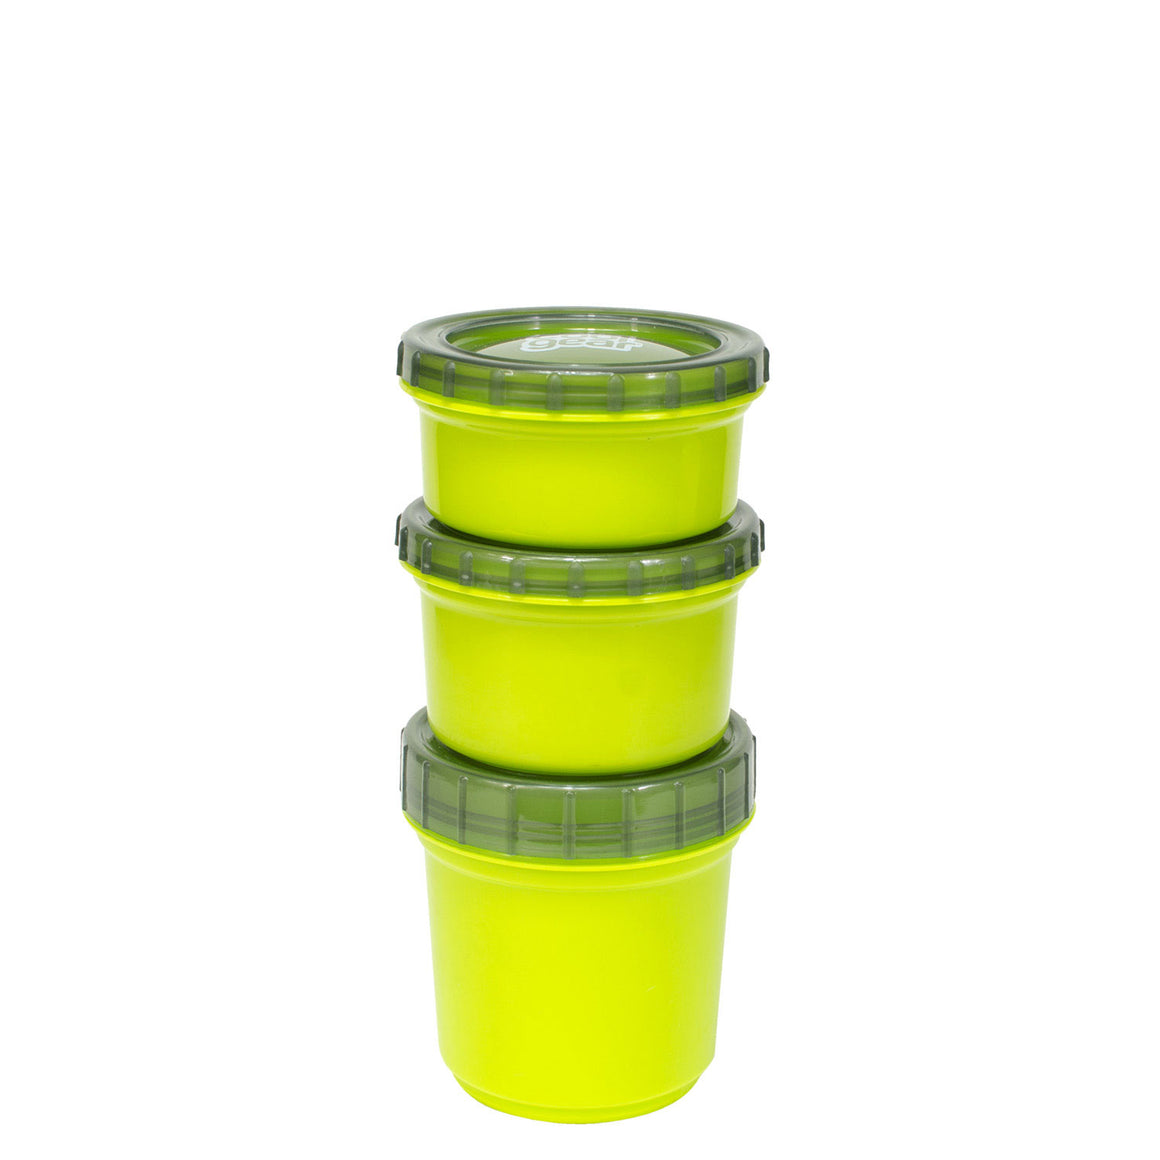 Purple / Pink Snack Stacker at Cool Gear Food Containers